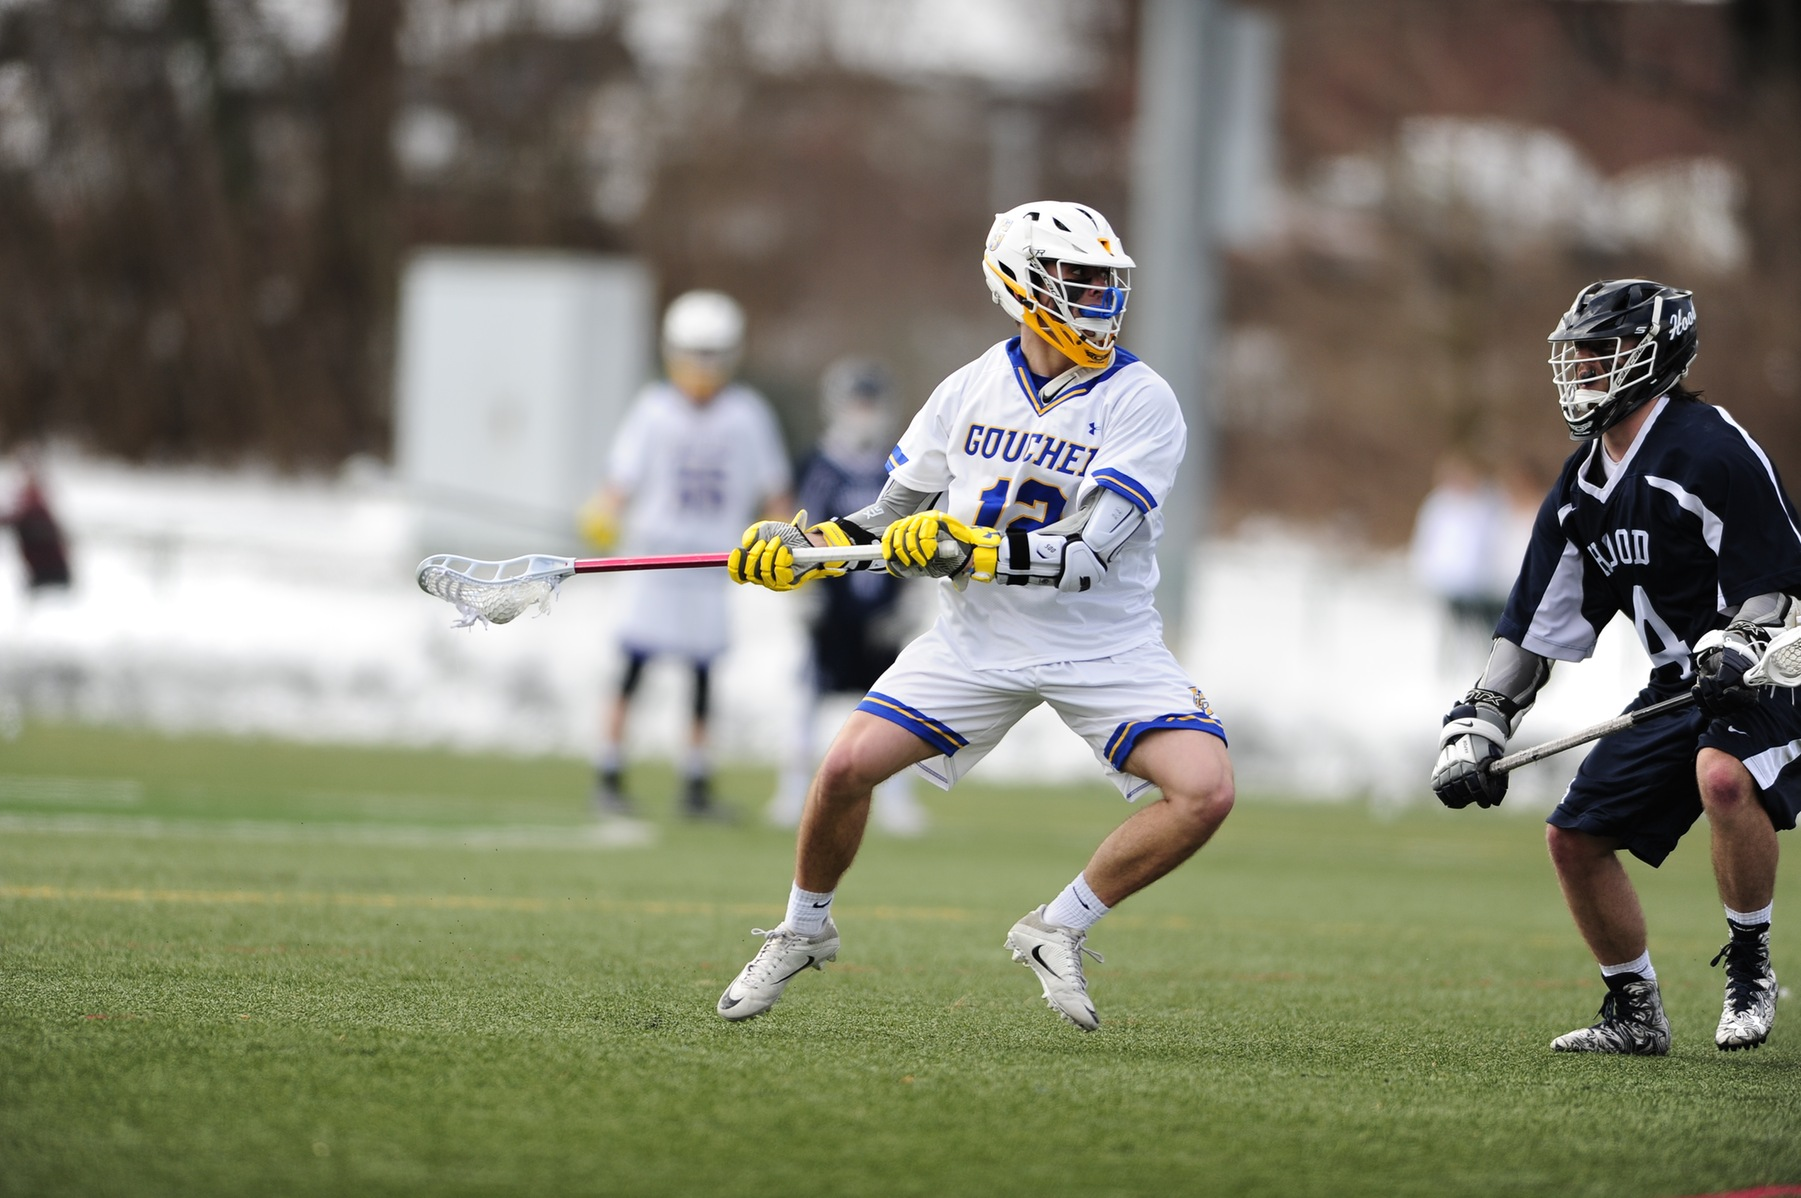 Sade Tallies Hat Trick in Men's Lacrosse's Loss to Susquehanna